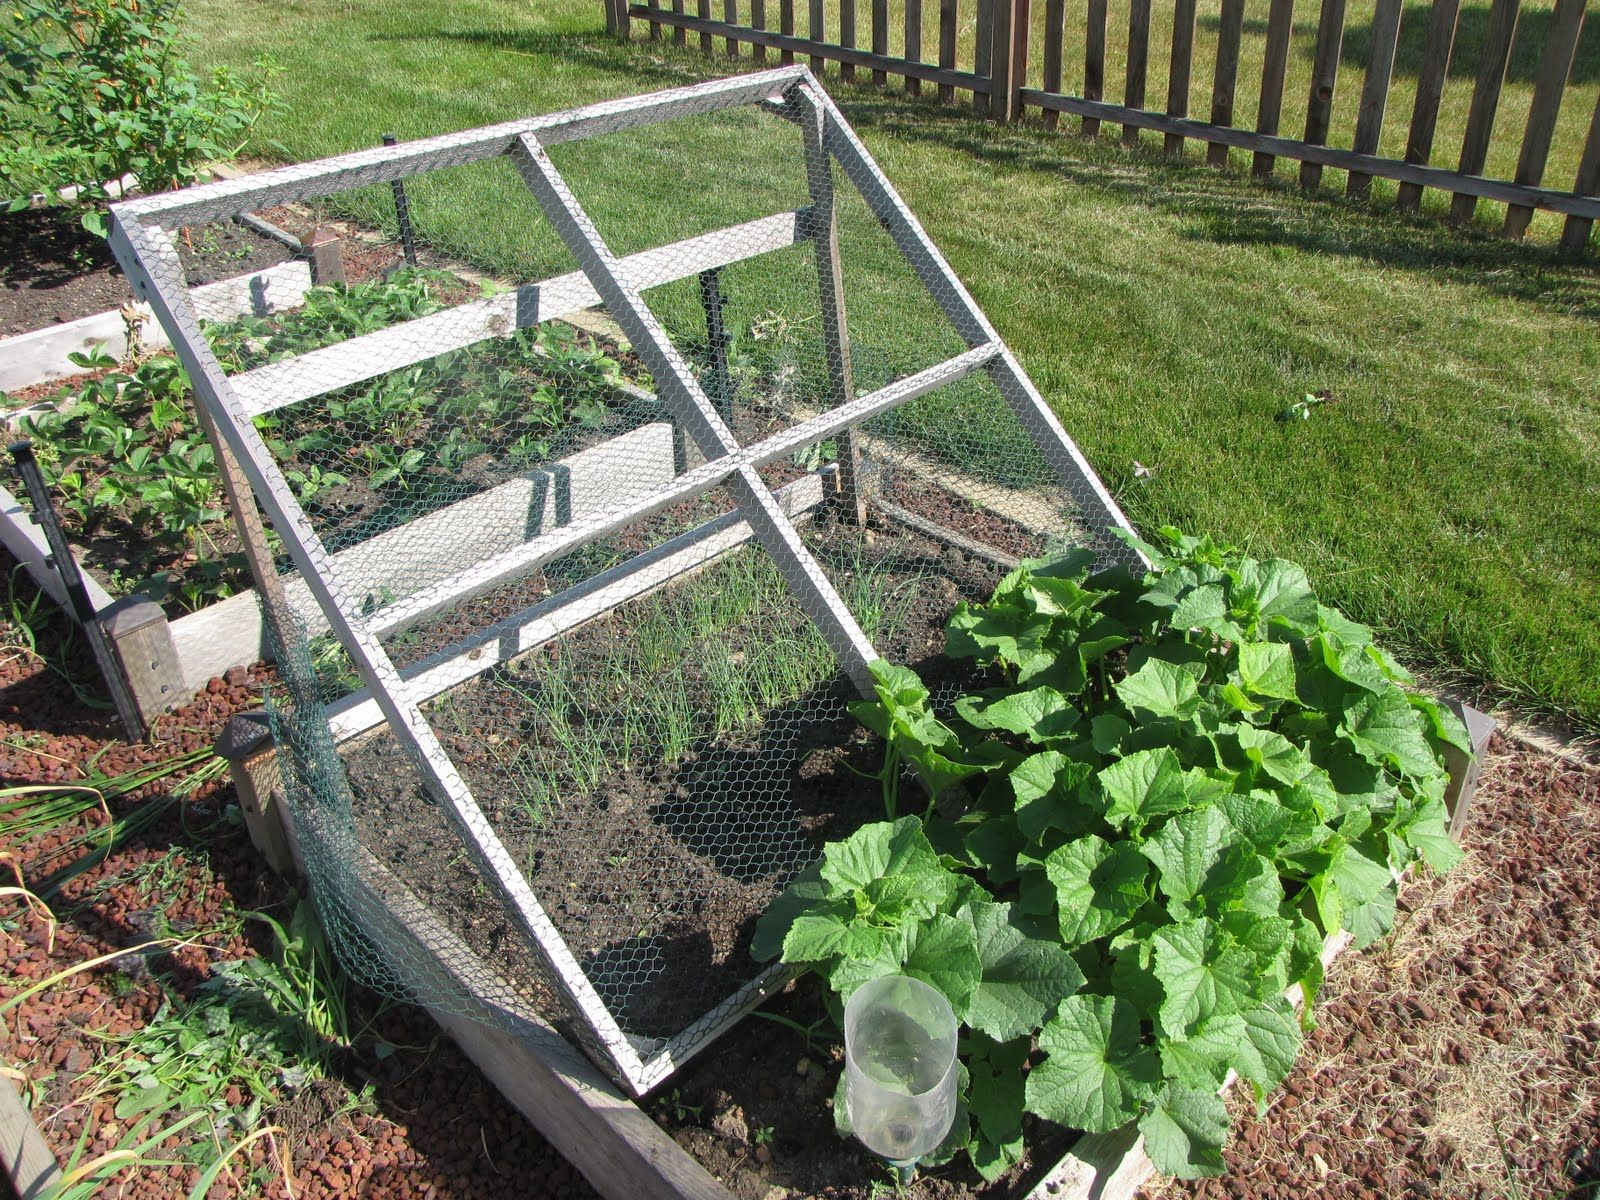 Marvelous Cucumber Trellis Ideas Part - 3: Raised Bed Cucumber Trellis Ideas